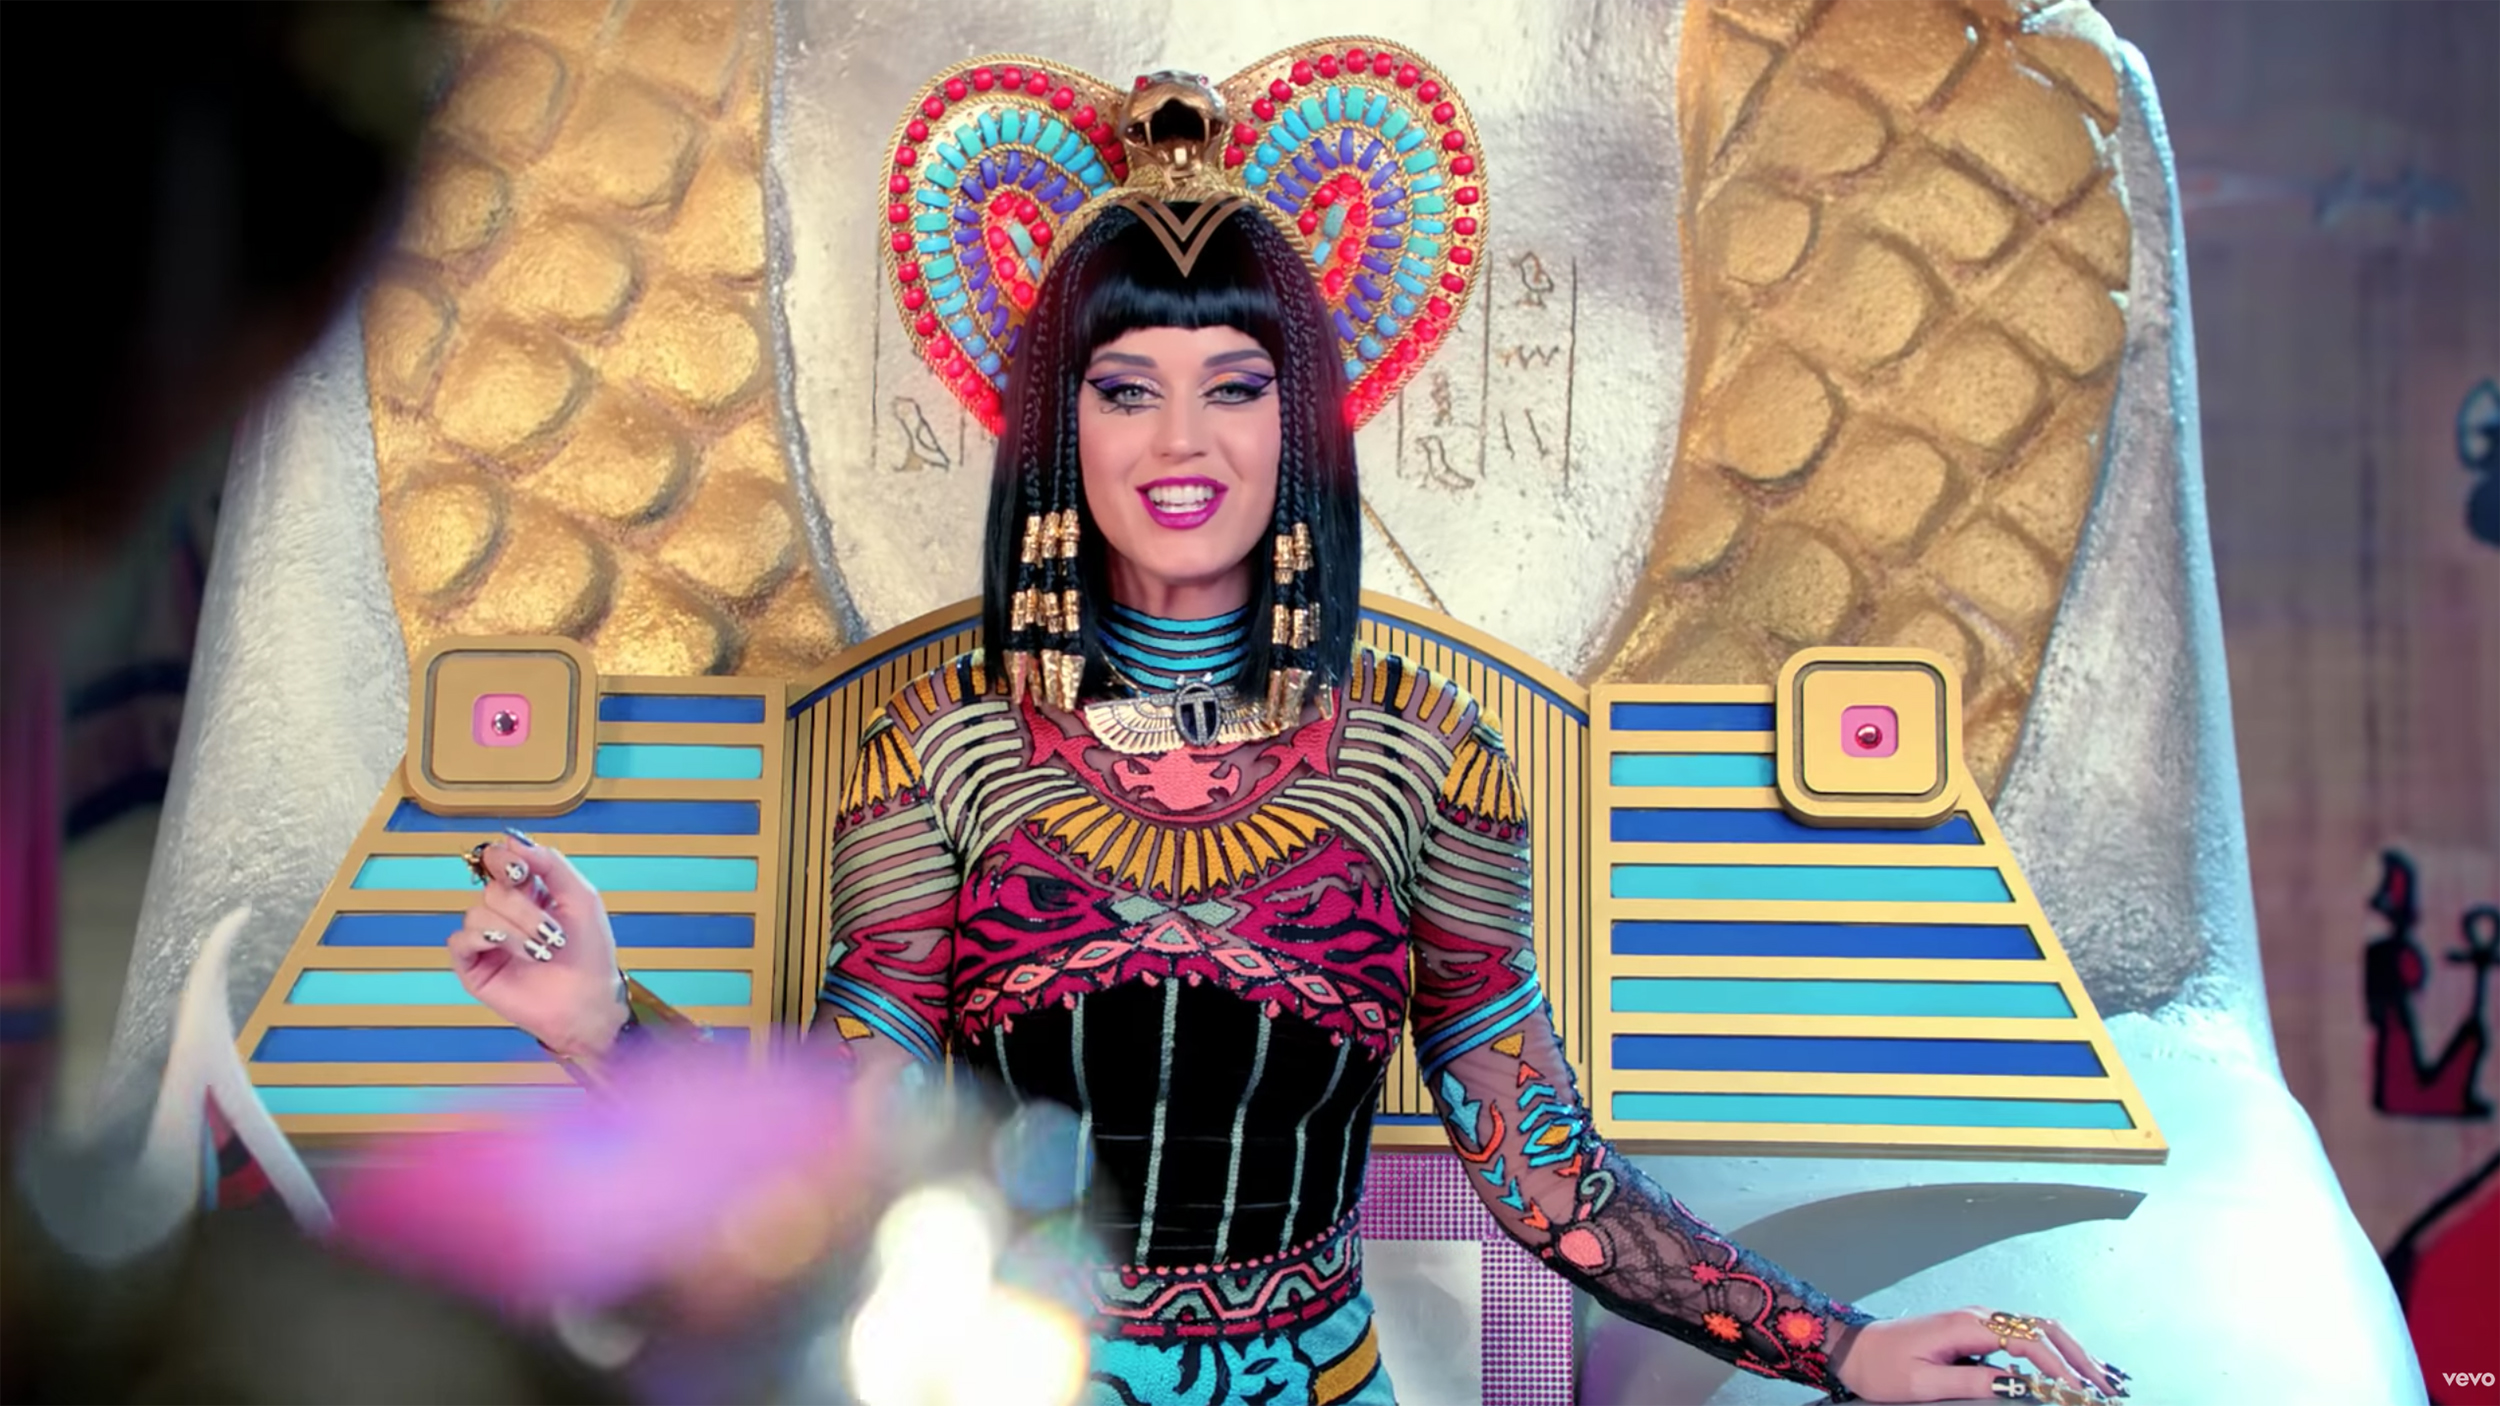 Jury Finds Katy Perry Copied Christian Rap Song Cnn Video